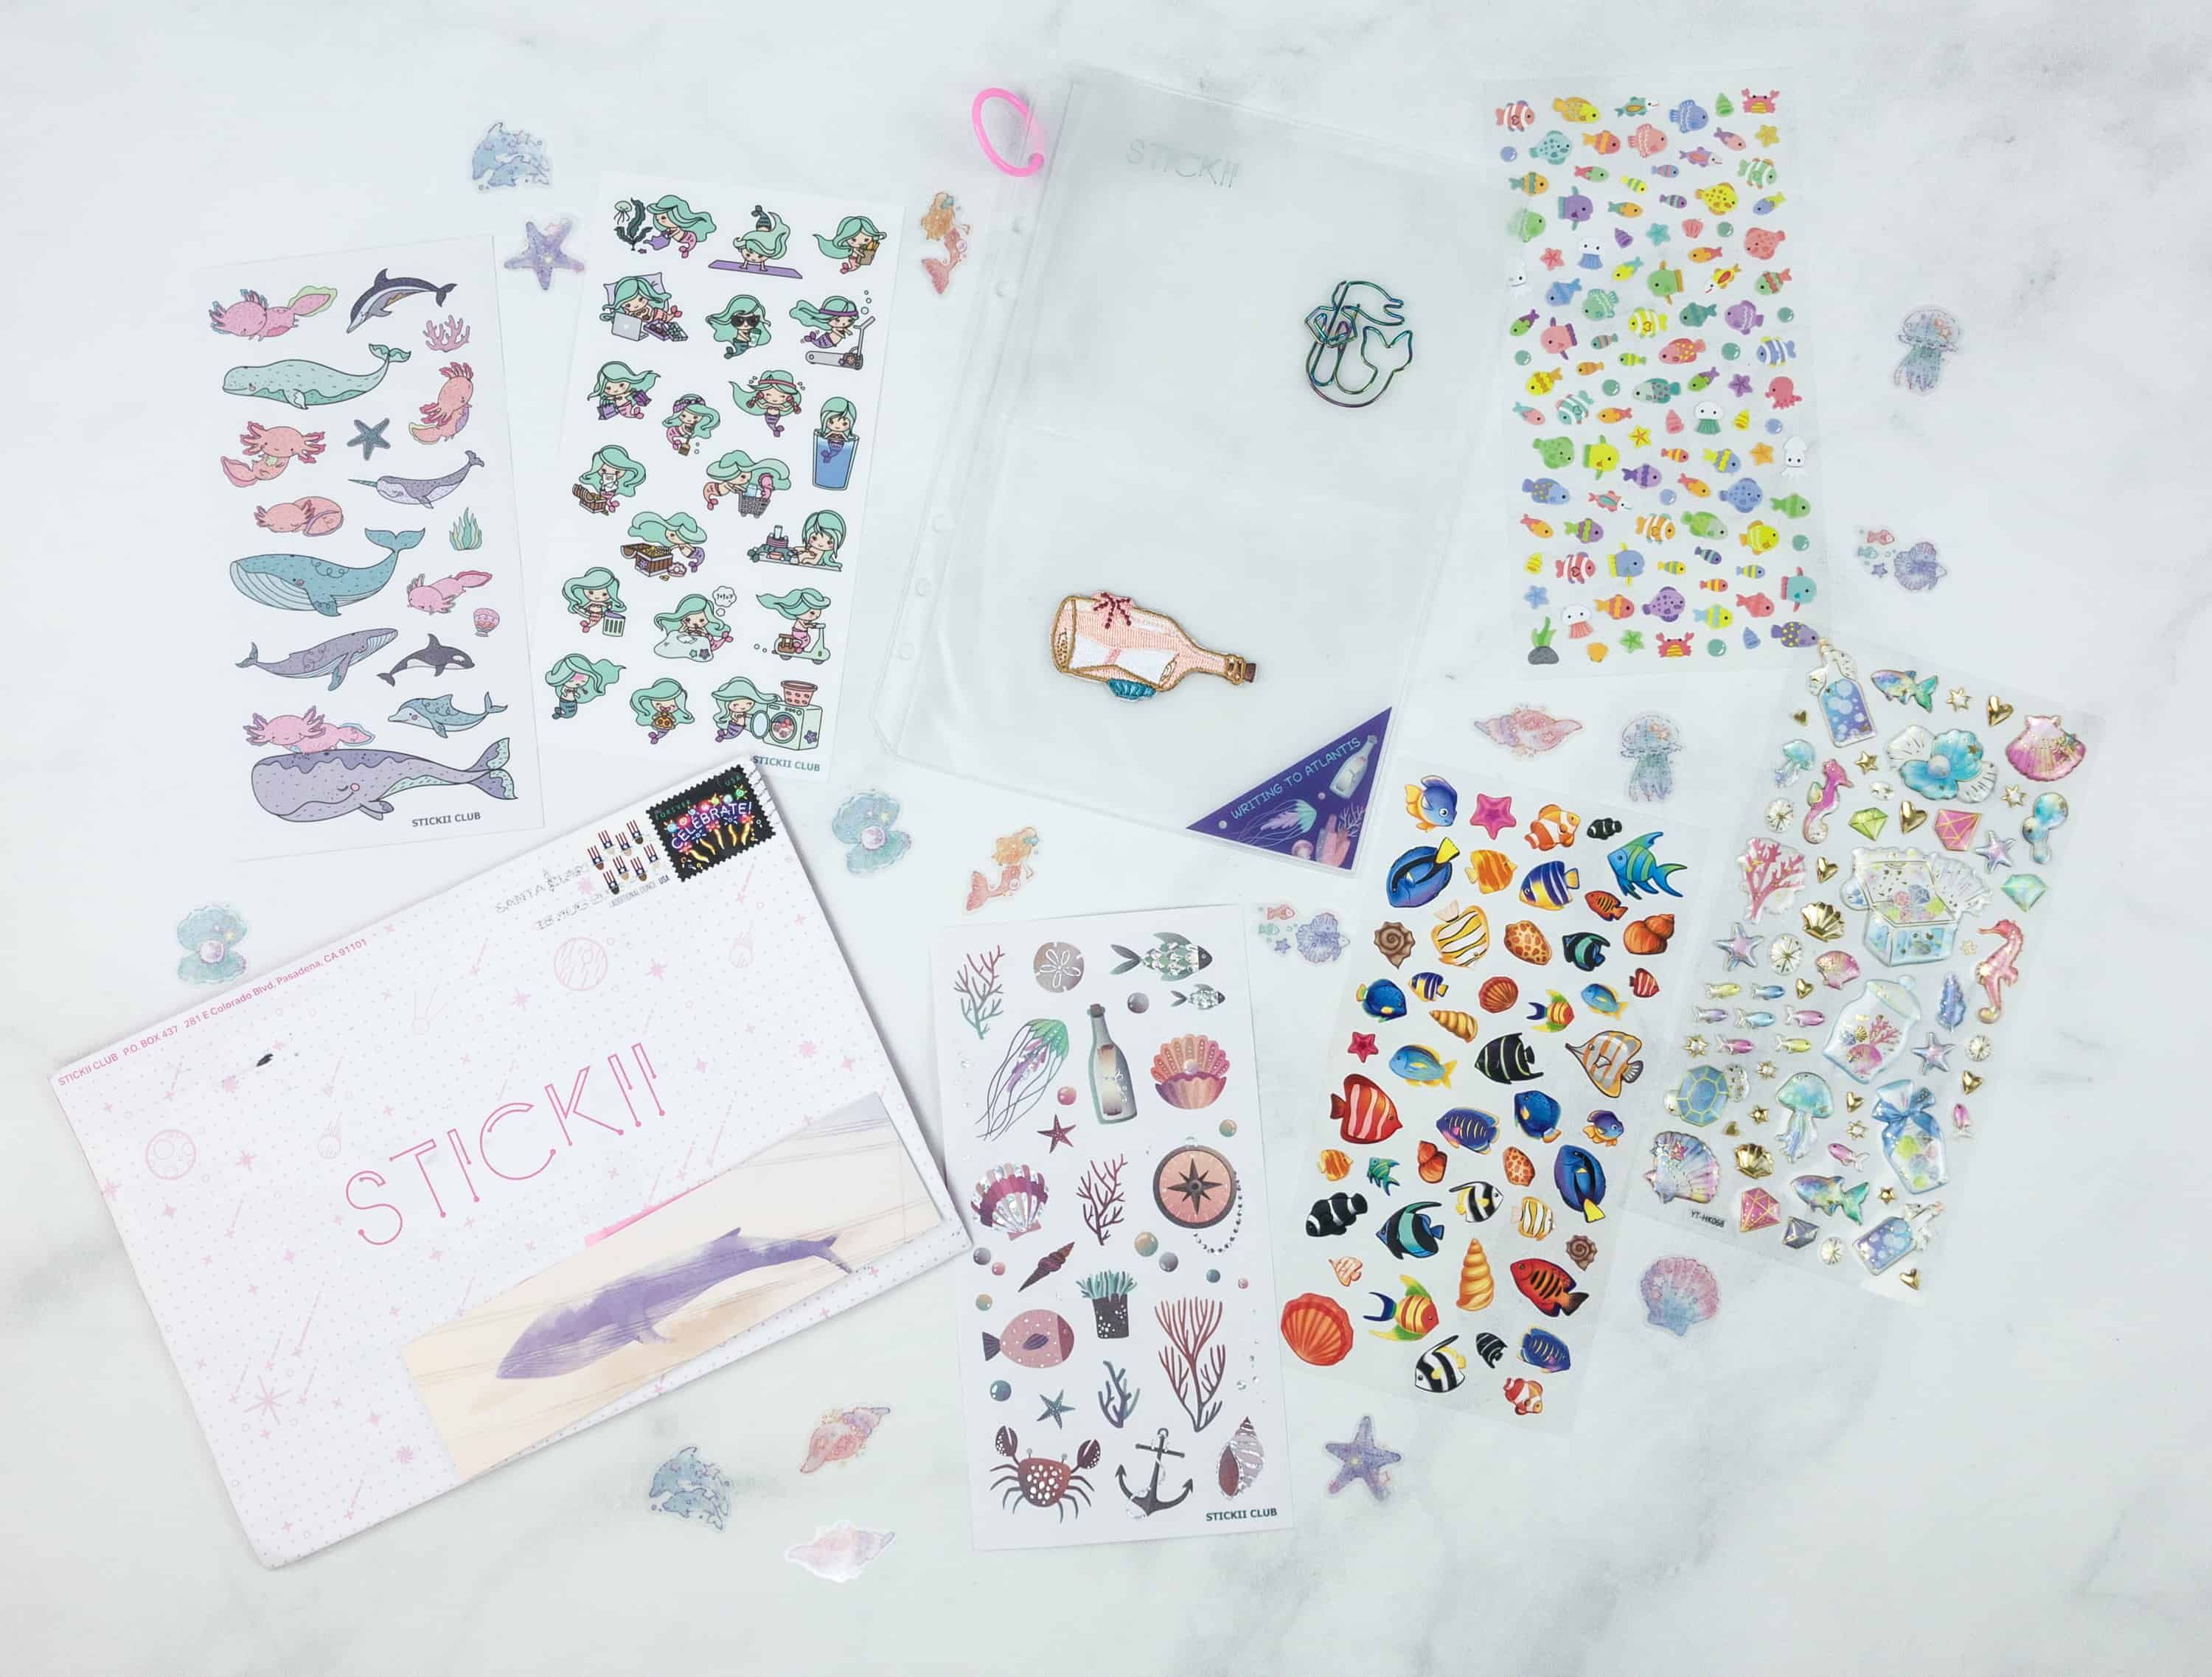 Stickii Club August 2018 Subscription Box Review & Coupon – Cute Pack!